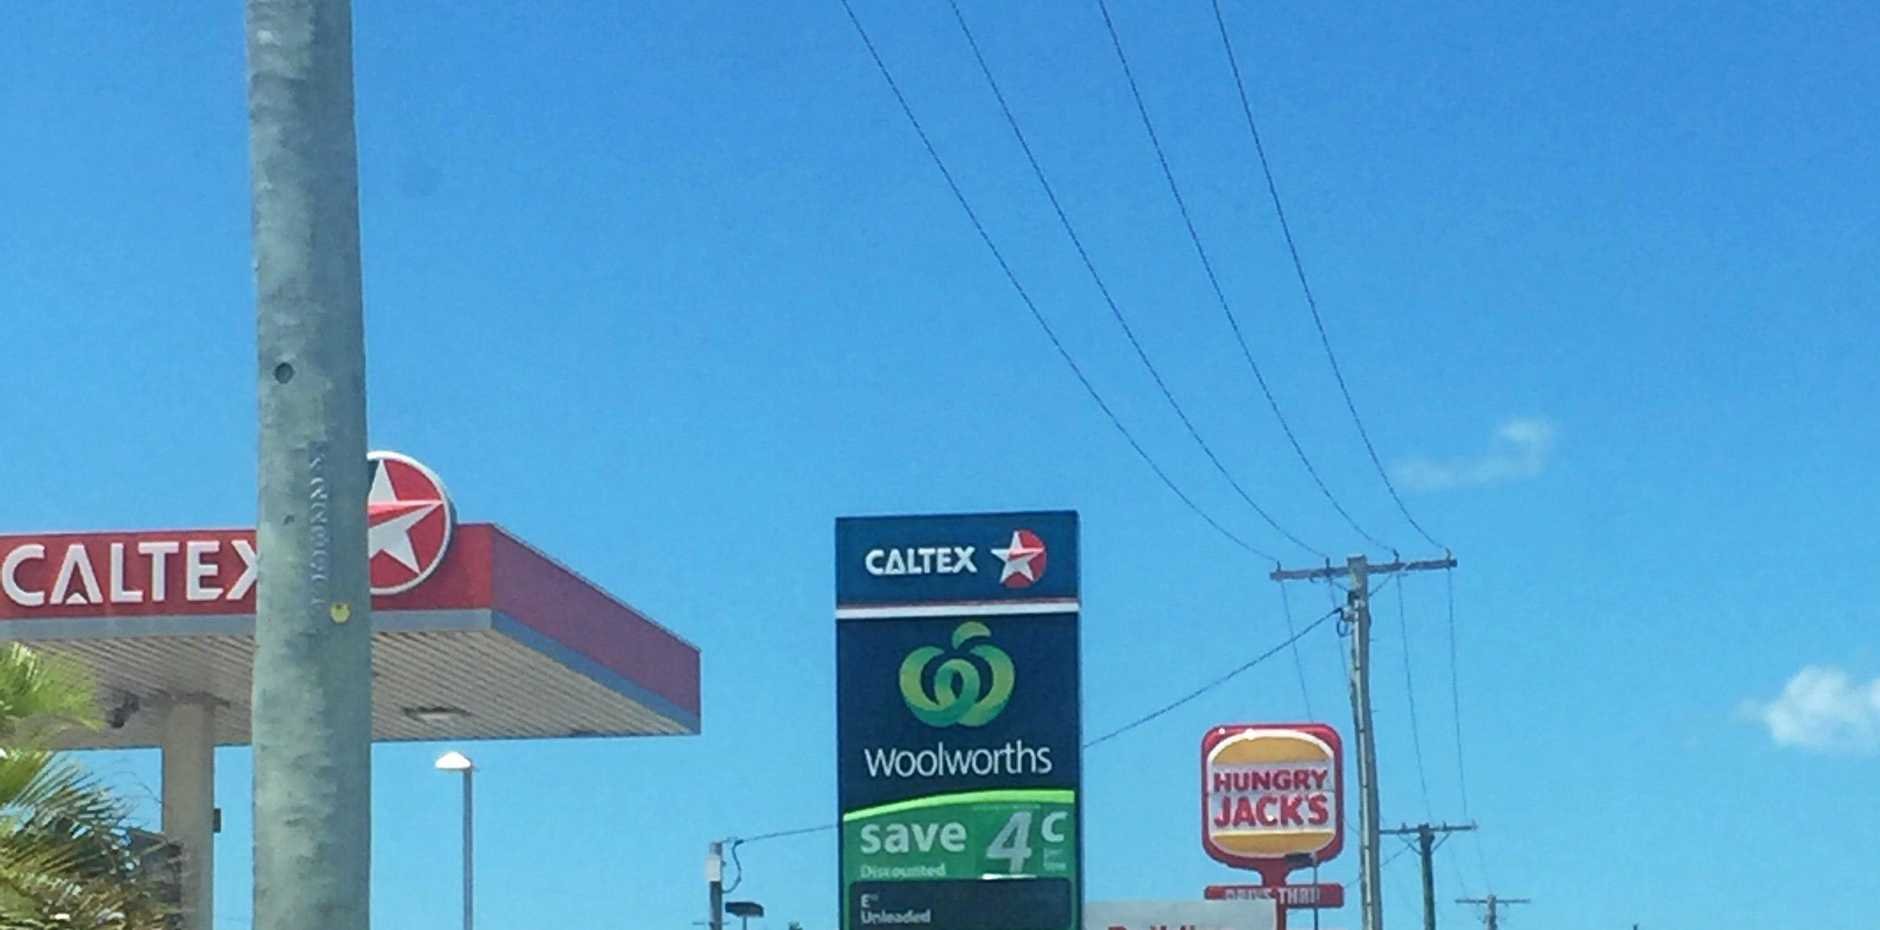 QUICK THINKING: The Woolworths Caltex on Takalvan St, where an electrical fire broke out early this morning.